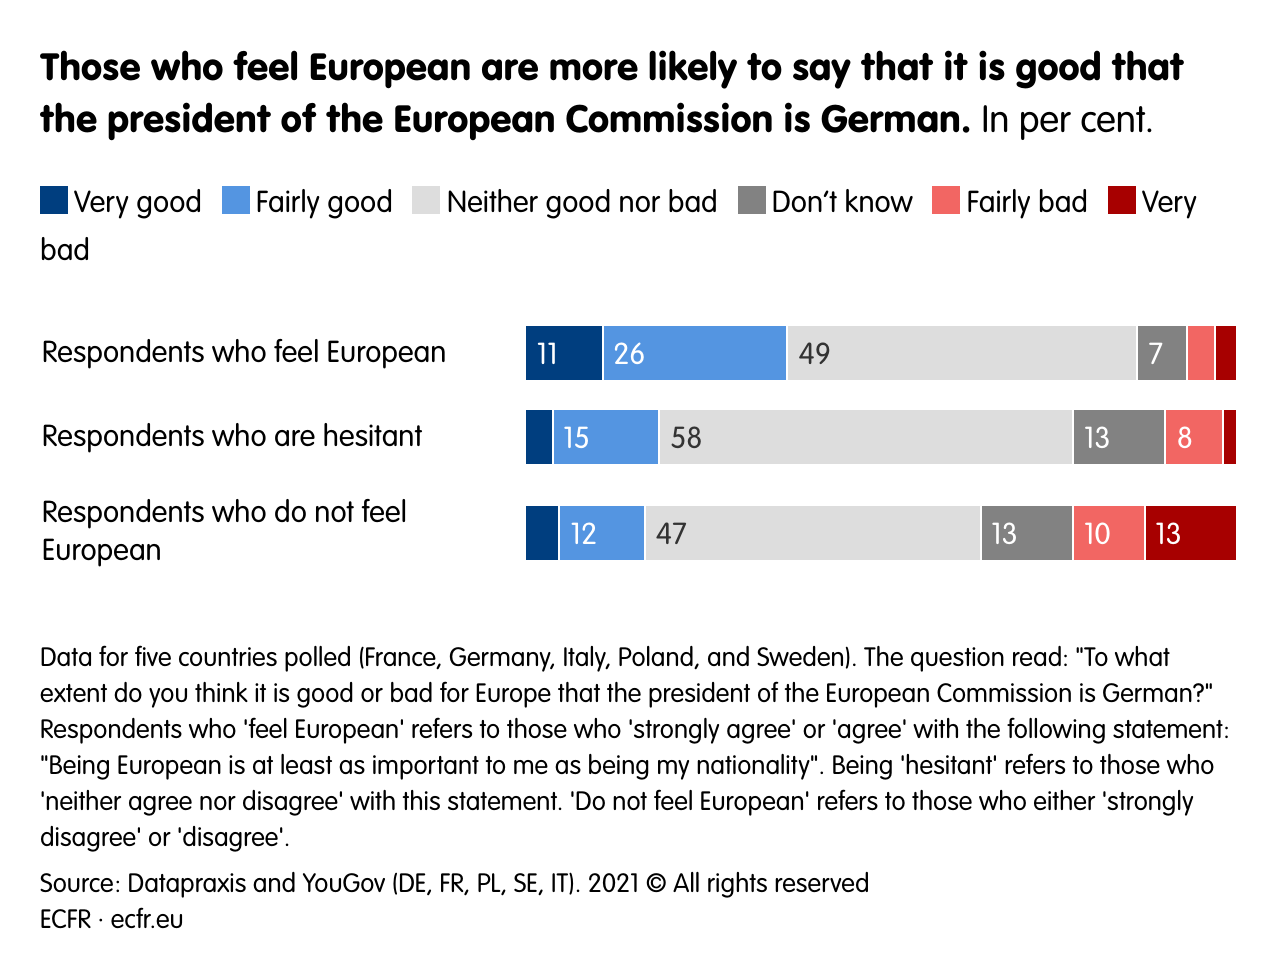 Those who feel European are more likely to say that it is good that the president of the European Commission is German.